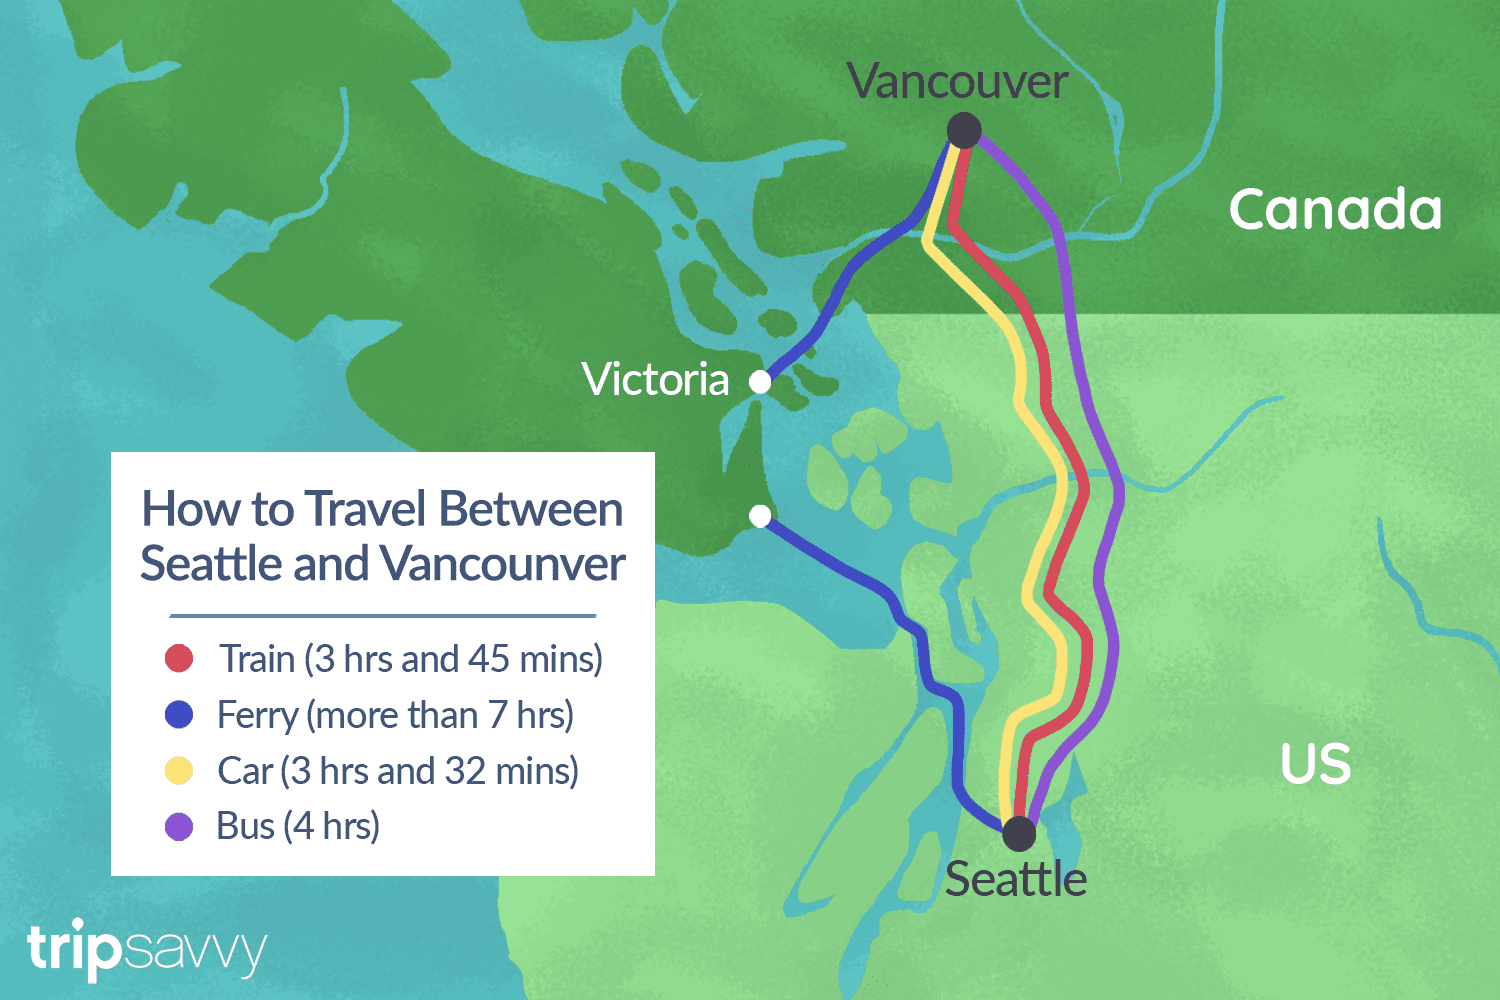 How to Travel Between Seattle and Vancouver